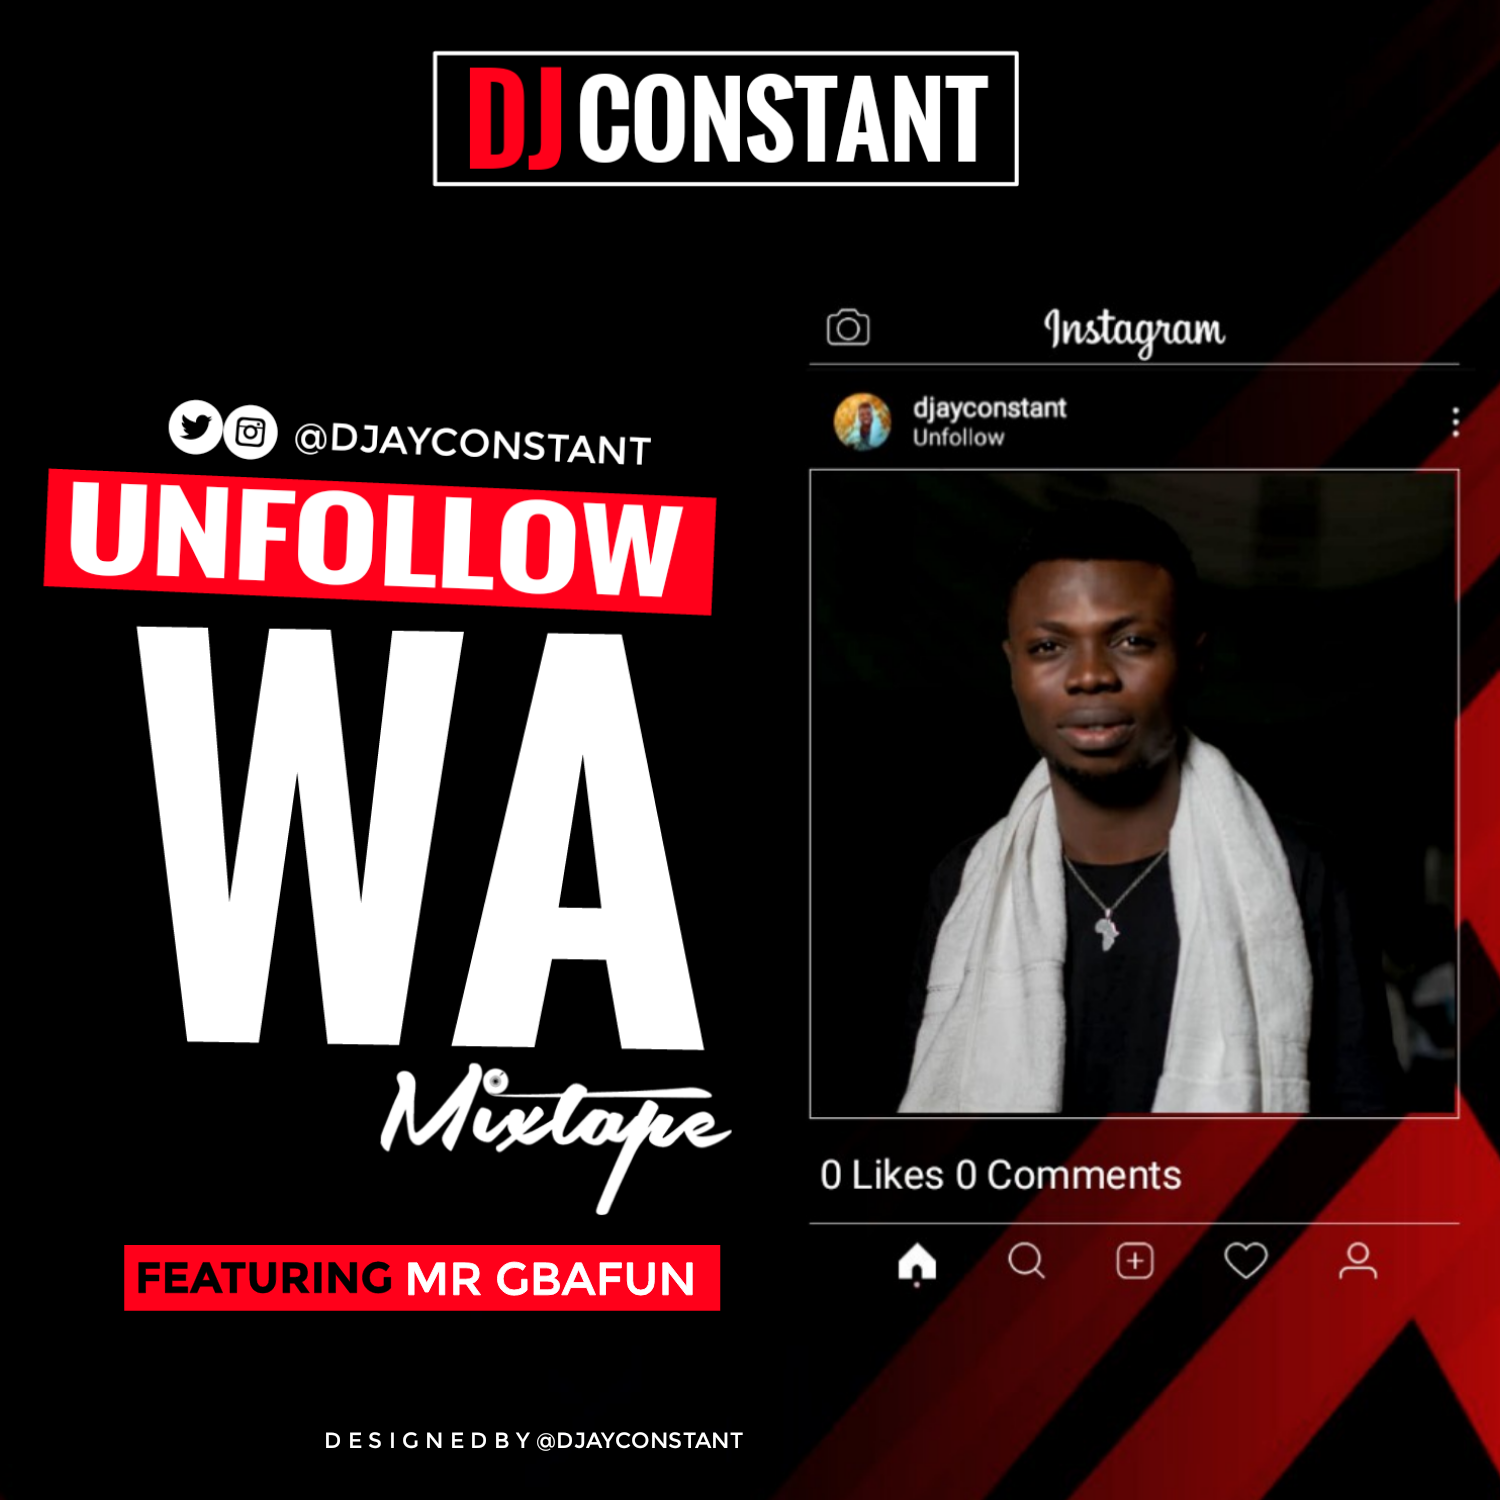 MIXTAPE: DJ CONSTANT FT. MR GBAFUN - UNFOLLOW WA